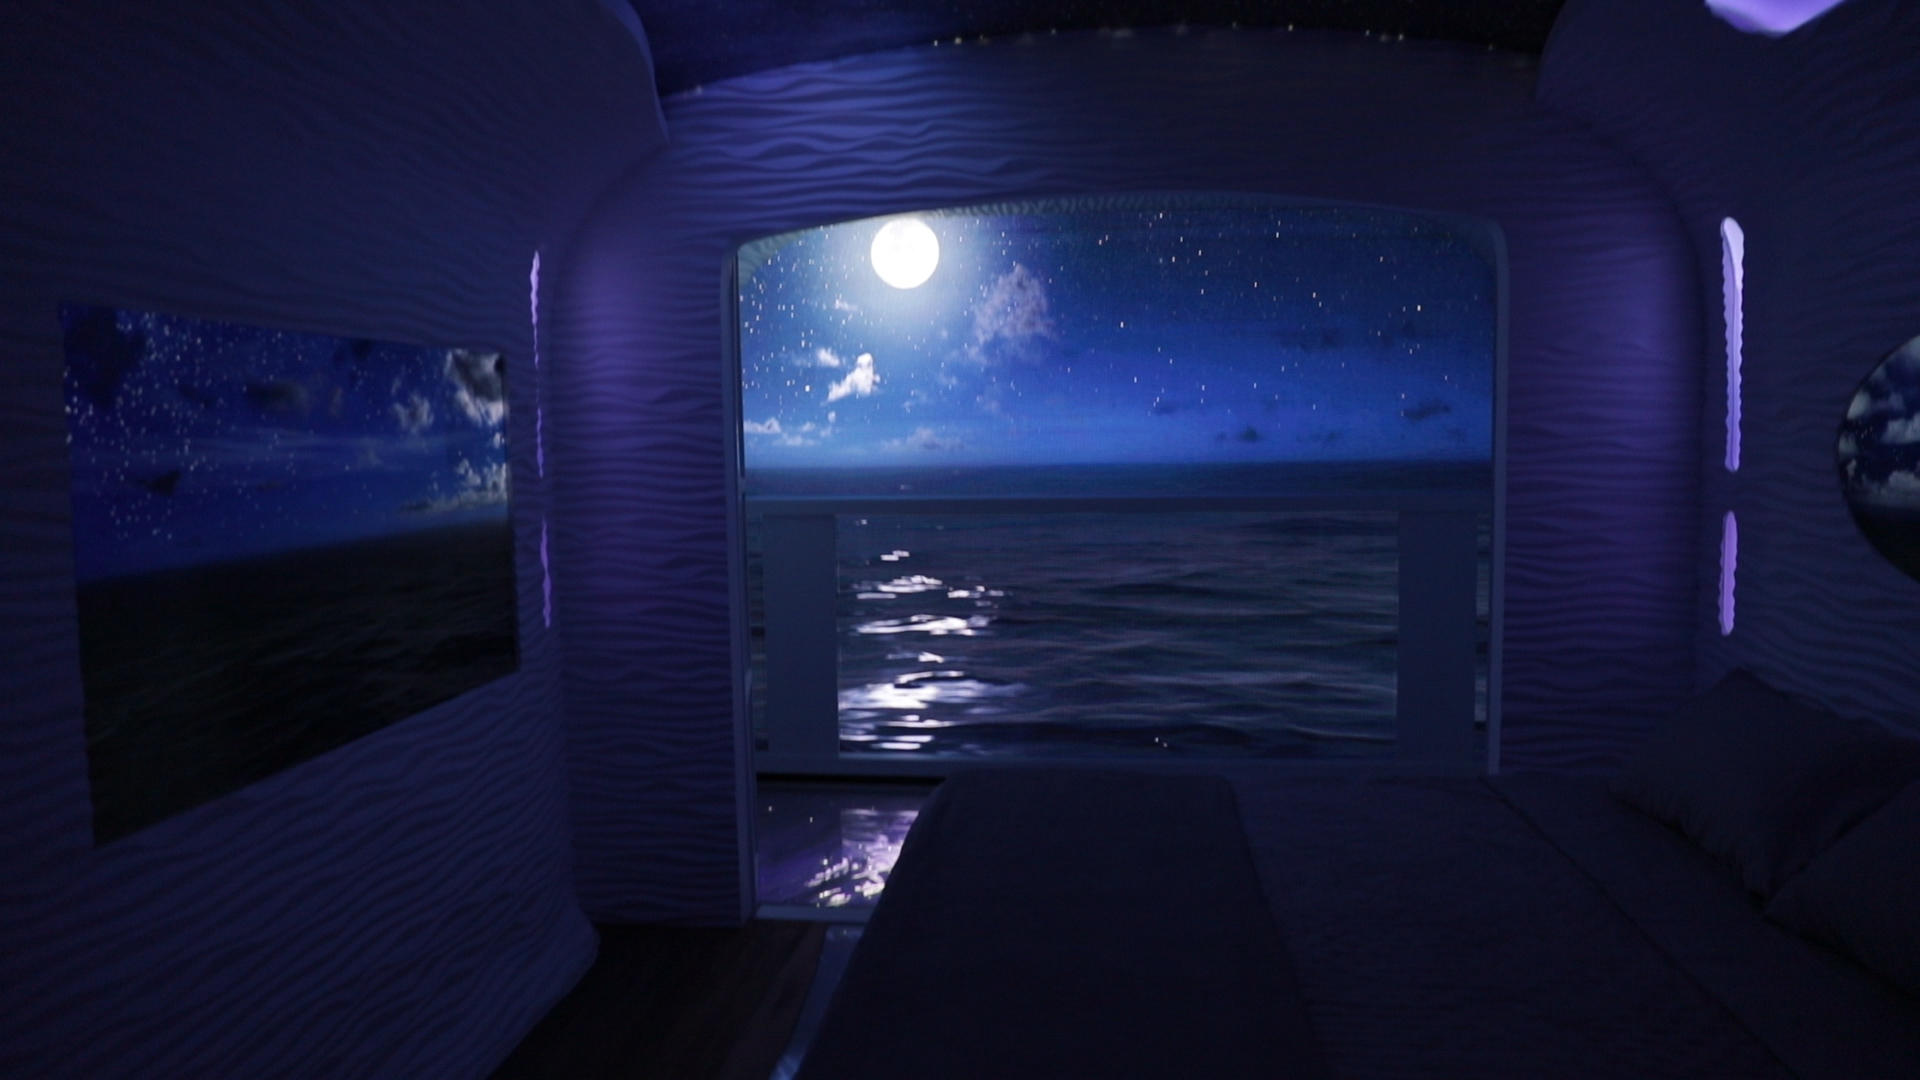 Simulation of a stateroom at night during Royal Caribbean's Sea Beyond tech event.